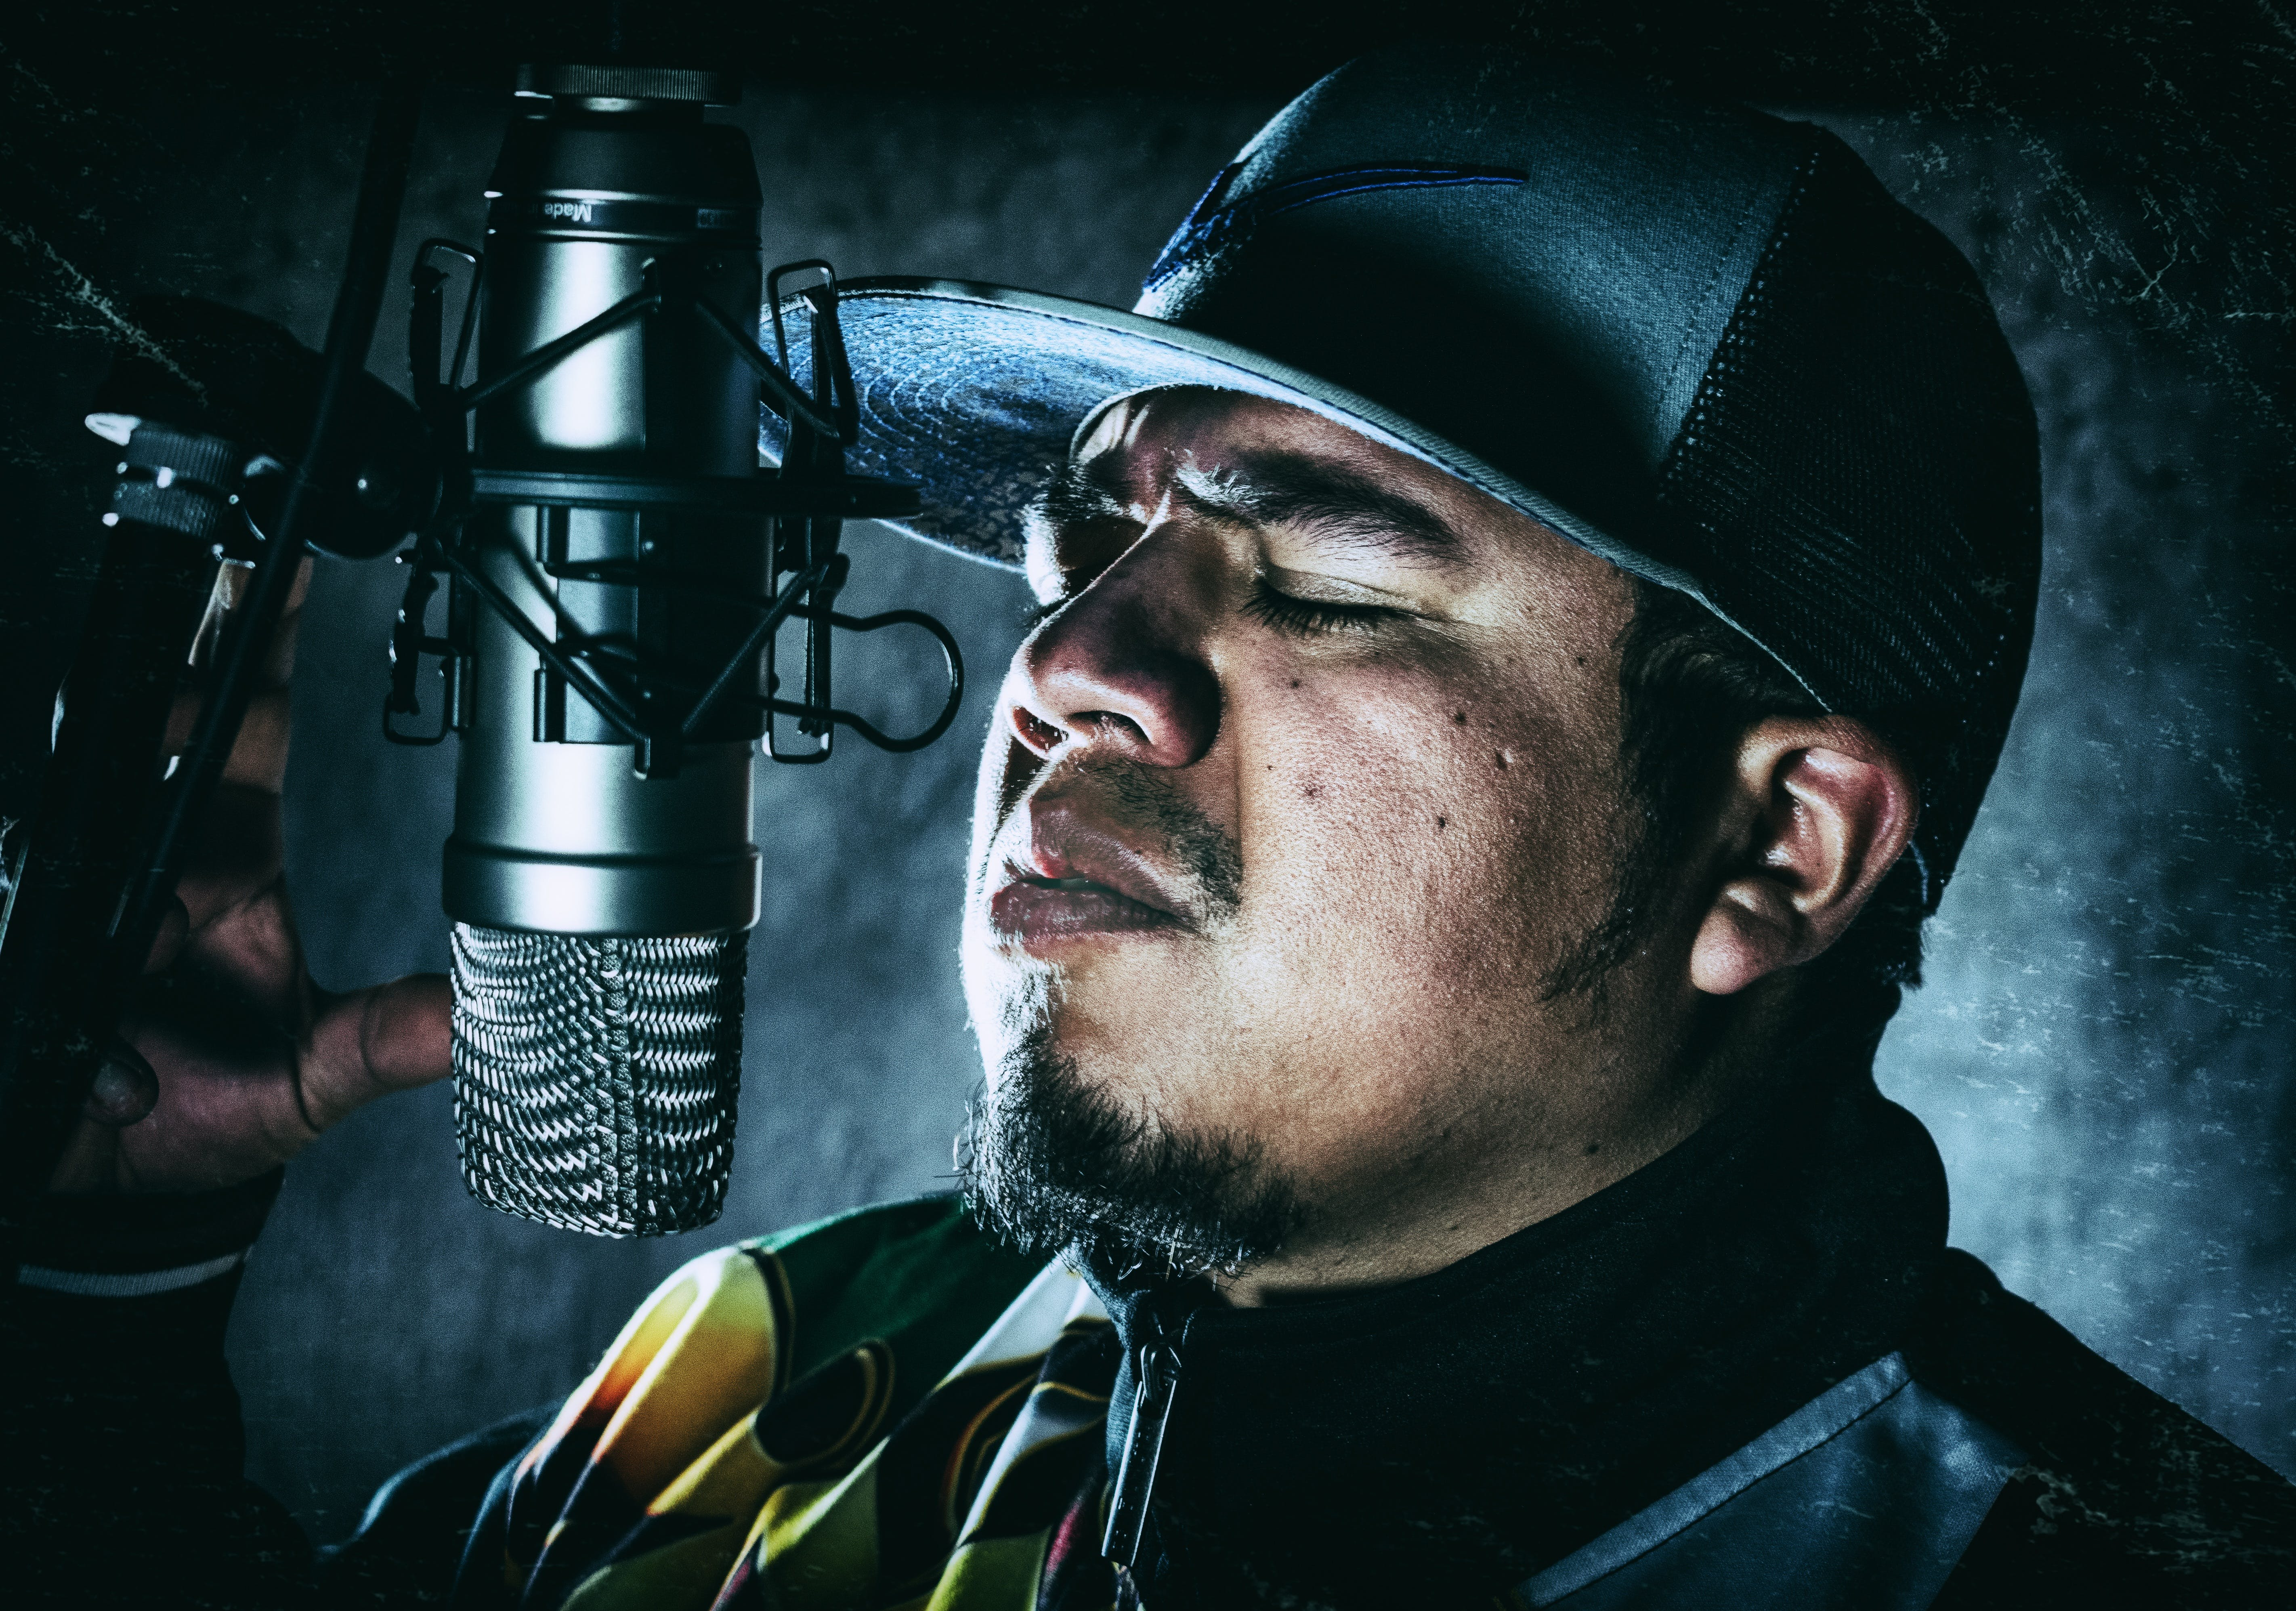 Man in Black Flat-brimmed Hat in Front of Condenser Microphone